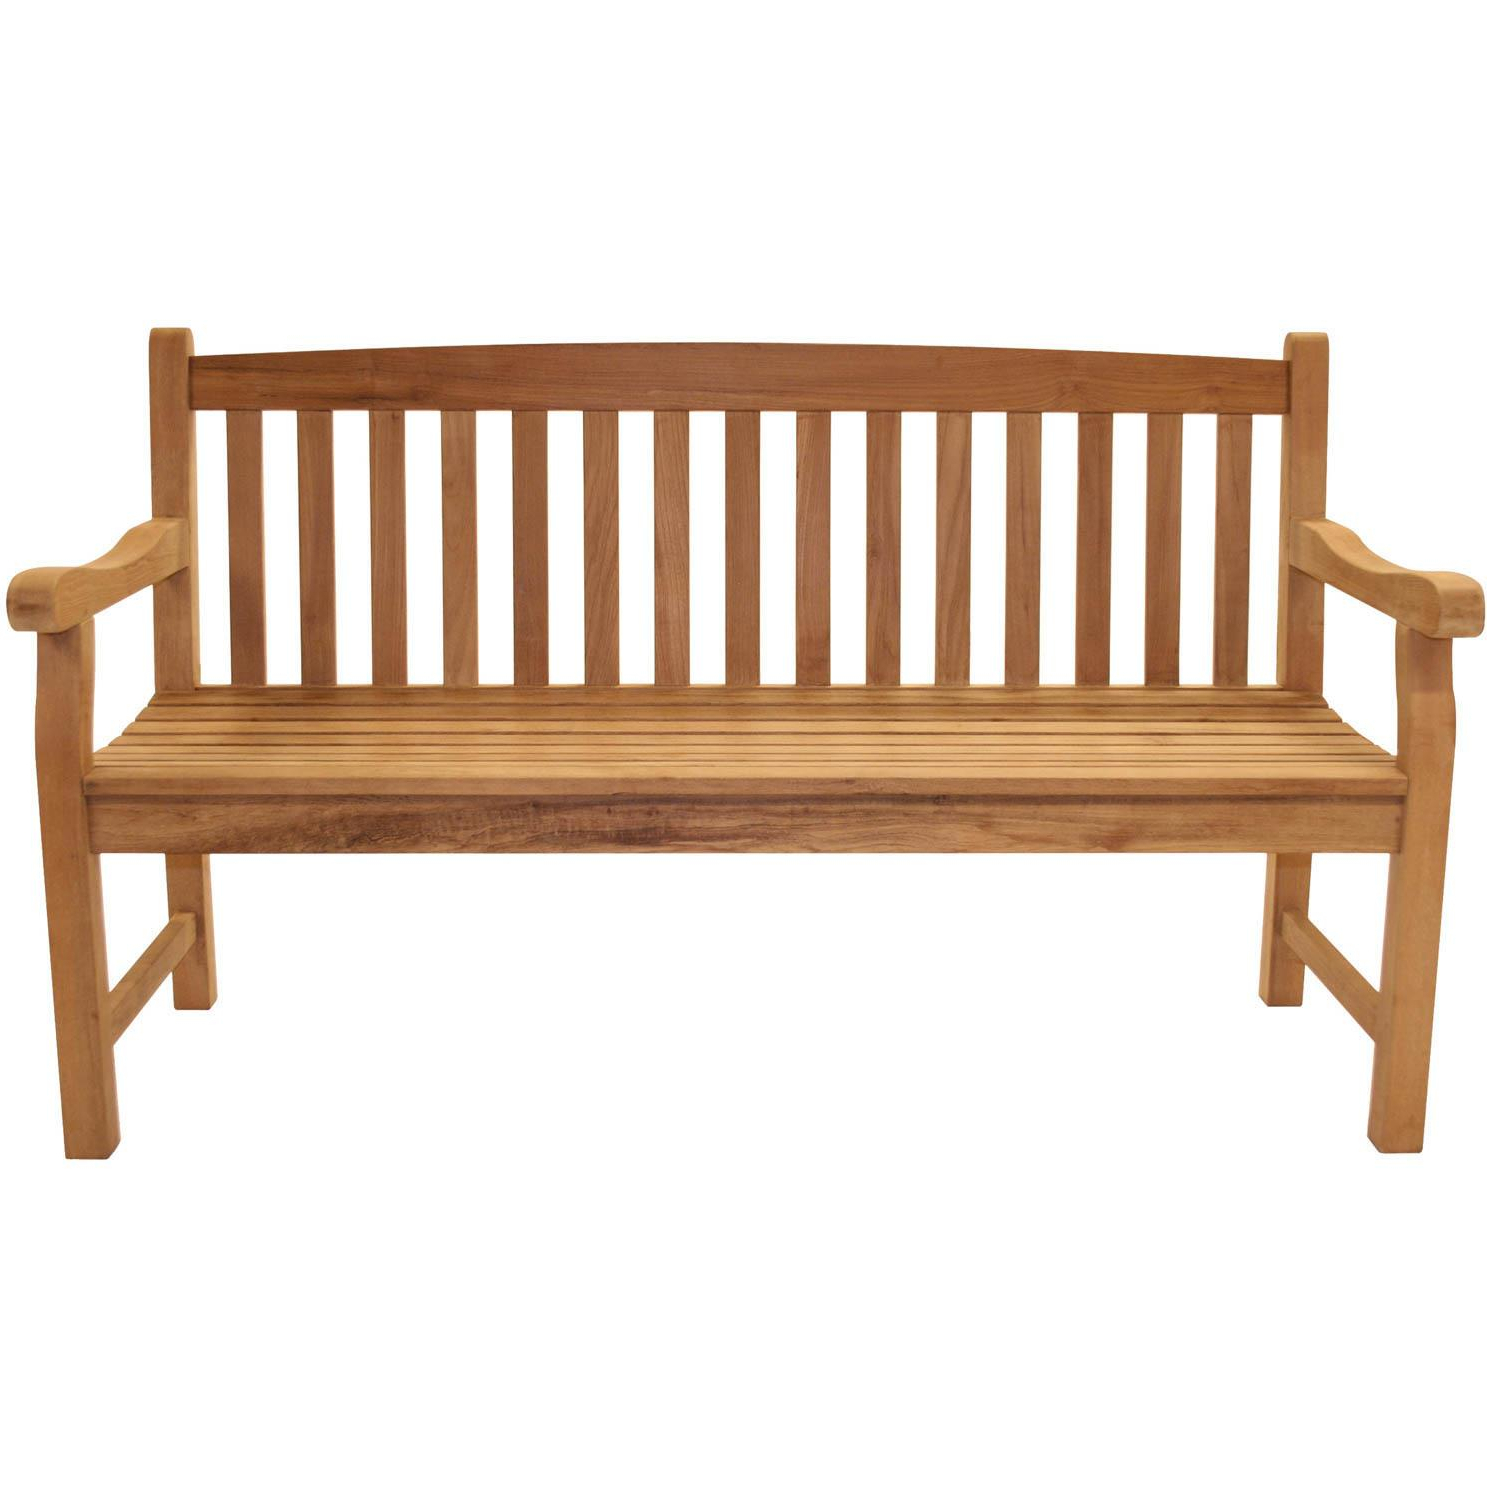 Current Royal Teak Collection Classic 63 Inch Teak Patio Bench Within Teak Glider Benches (View 2 of 30)